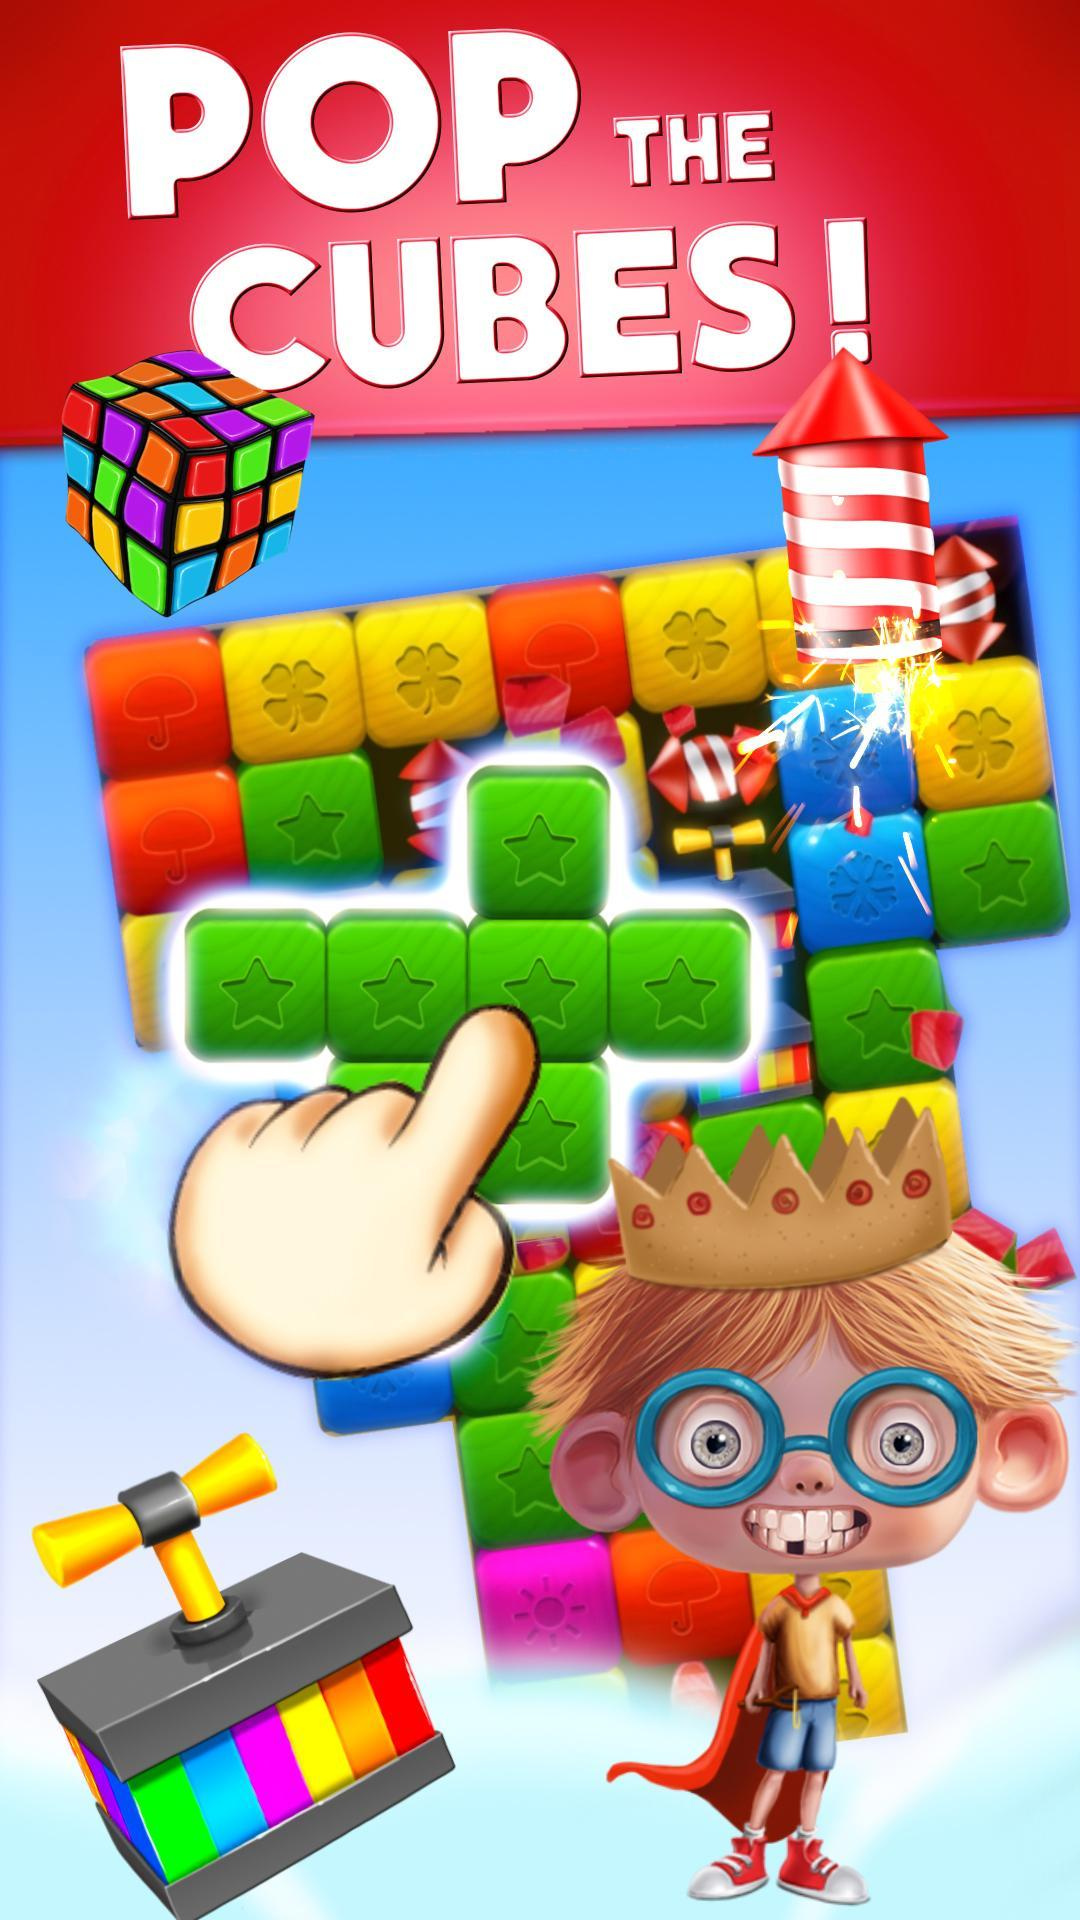 Toy Box Crazy Story - toys drop cubes 454 Screenshot 1